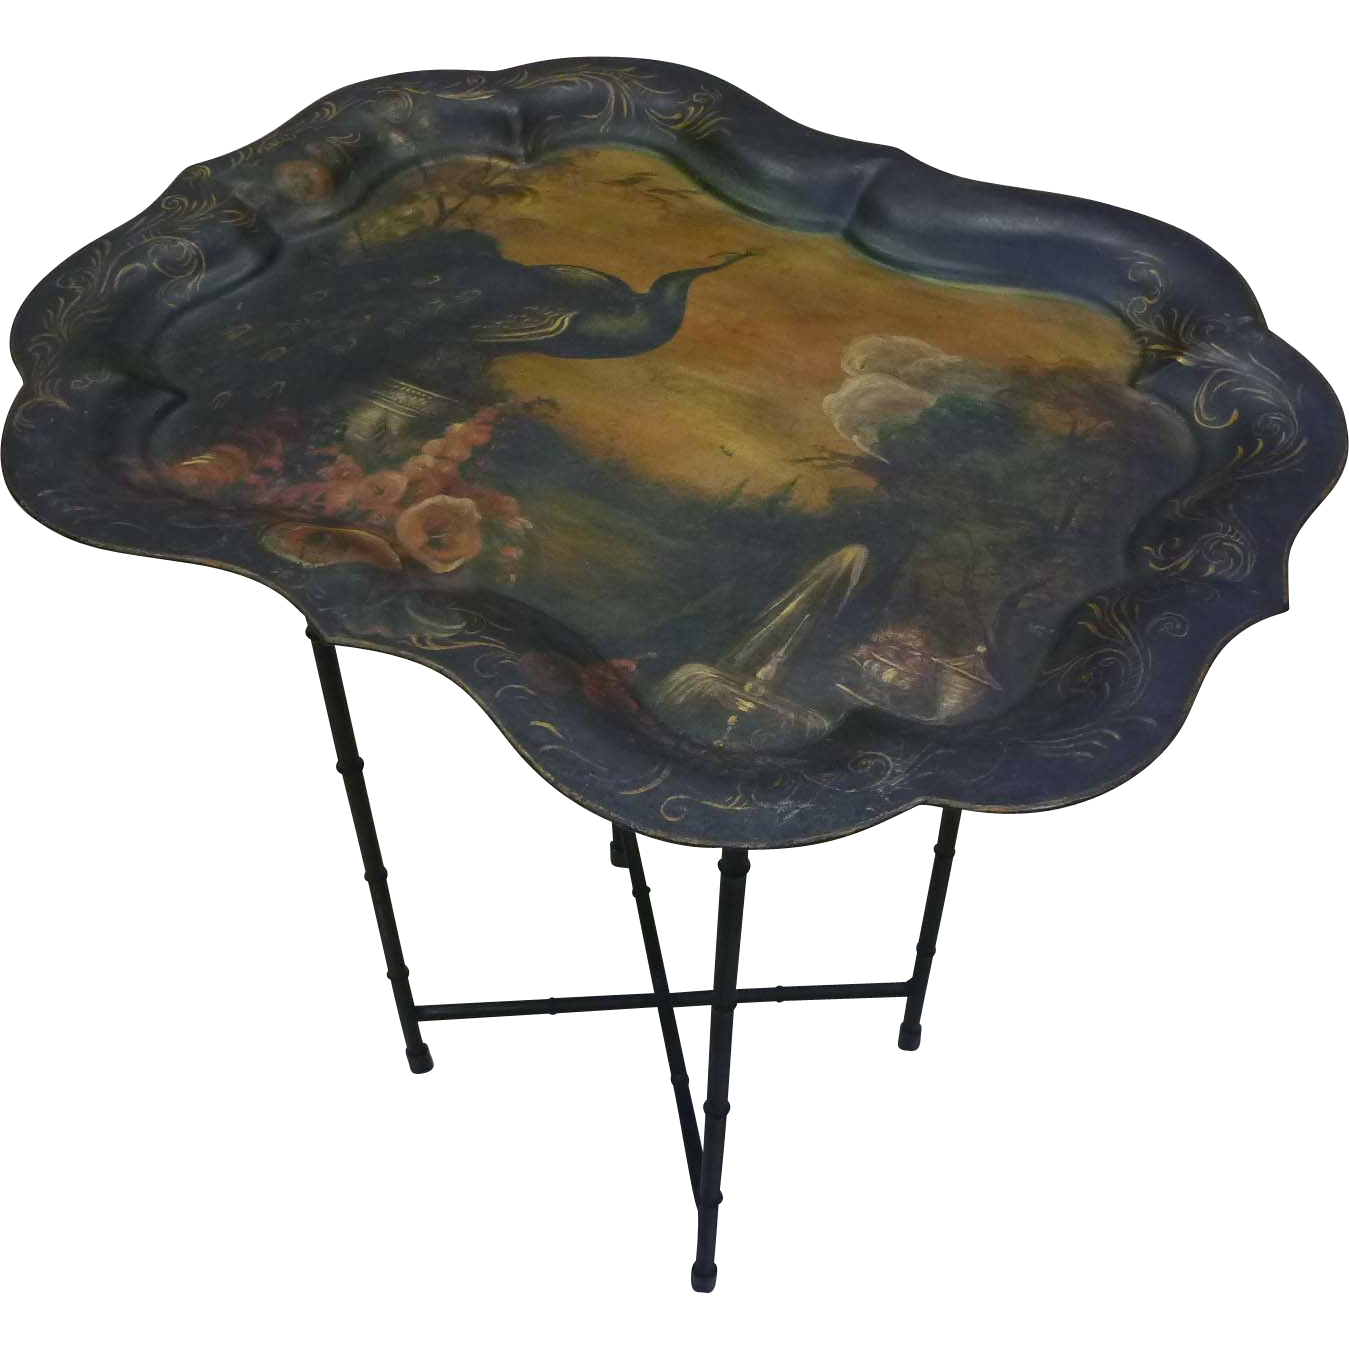 Toleware Tray on Folding Stand